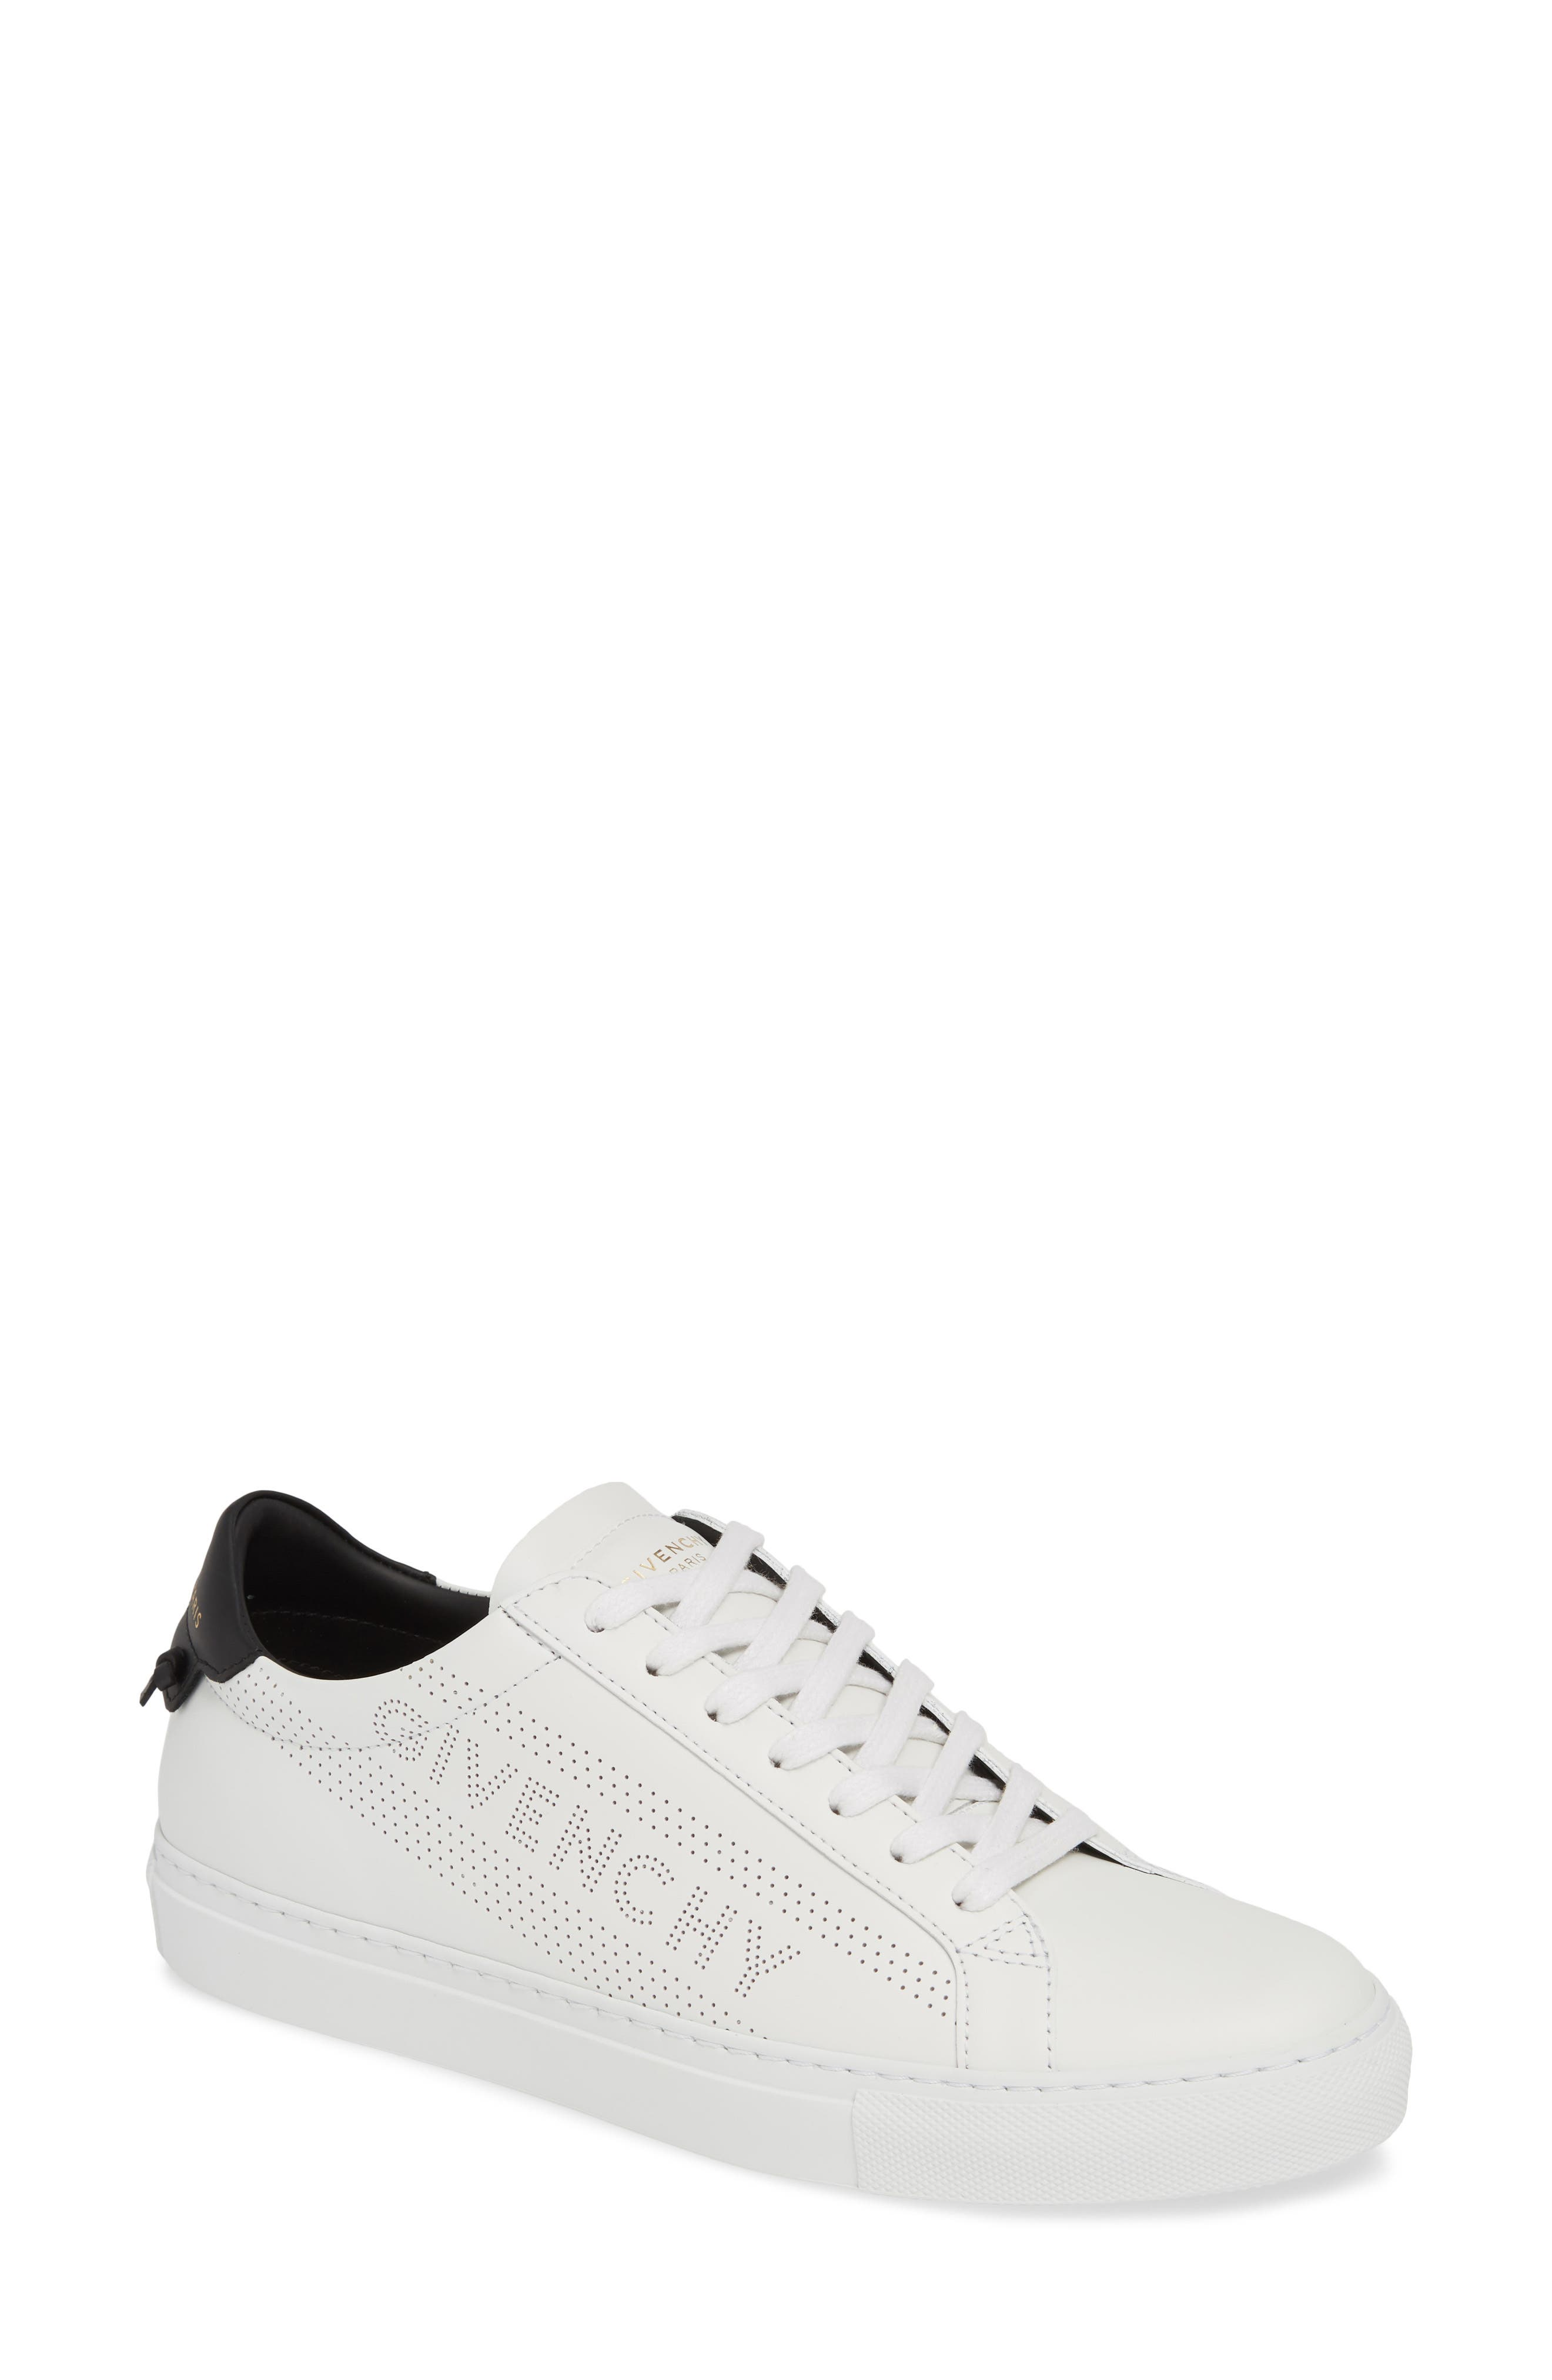 Urban Street Perforated Sneaker,                             Main thumbnail 1, color,                             WHITE/ BLACK